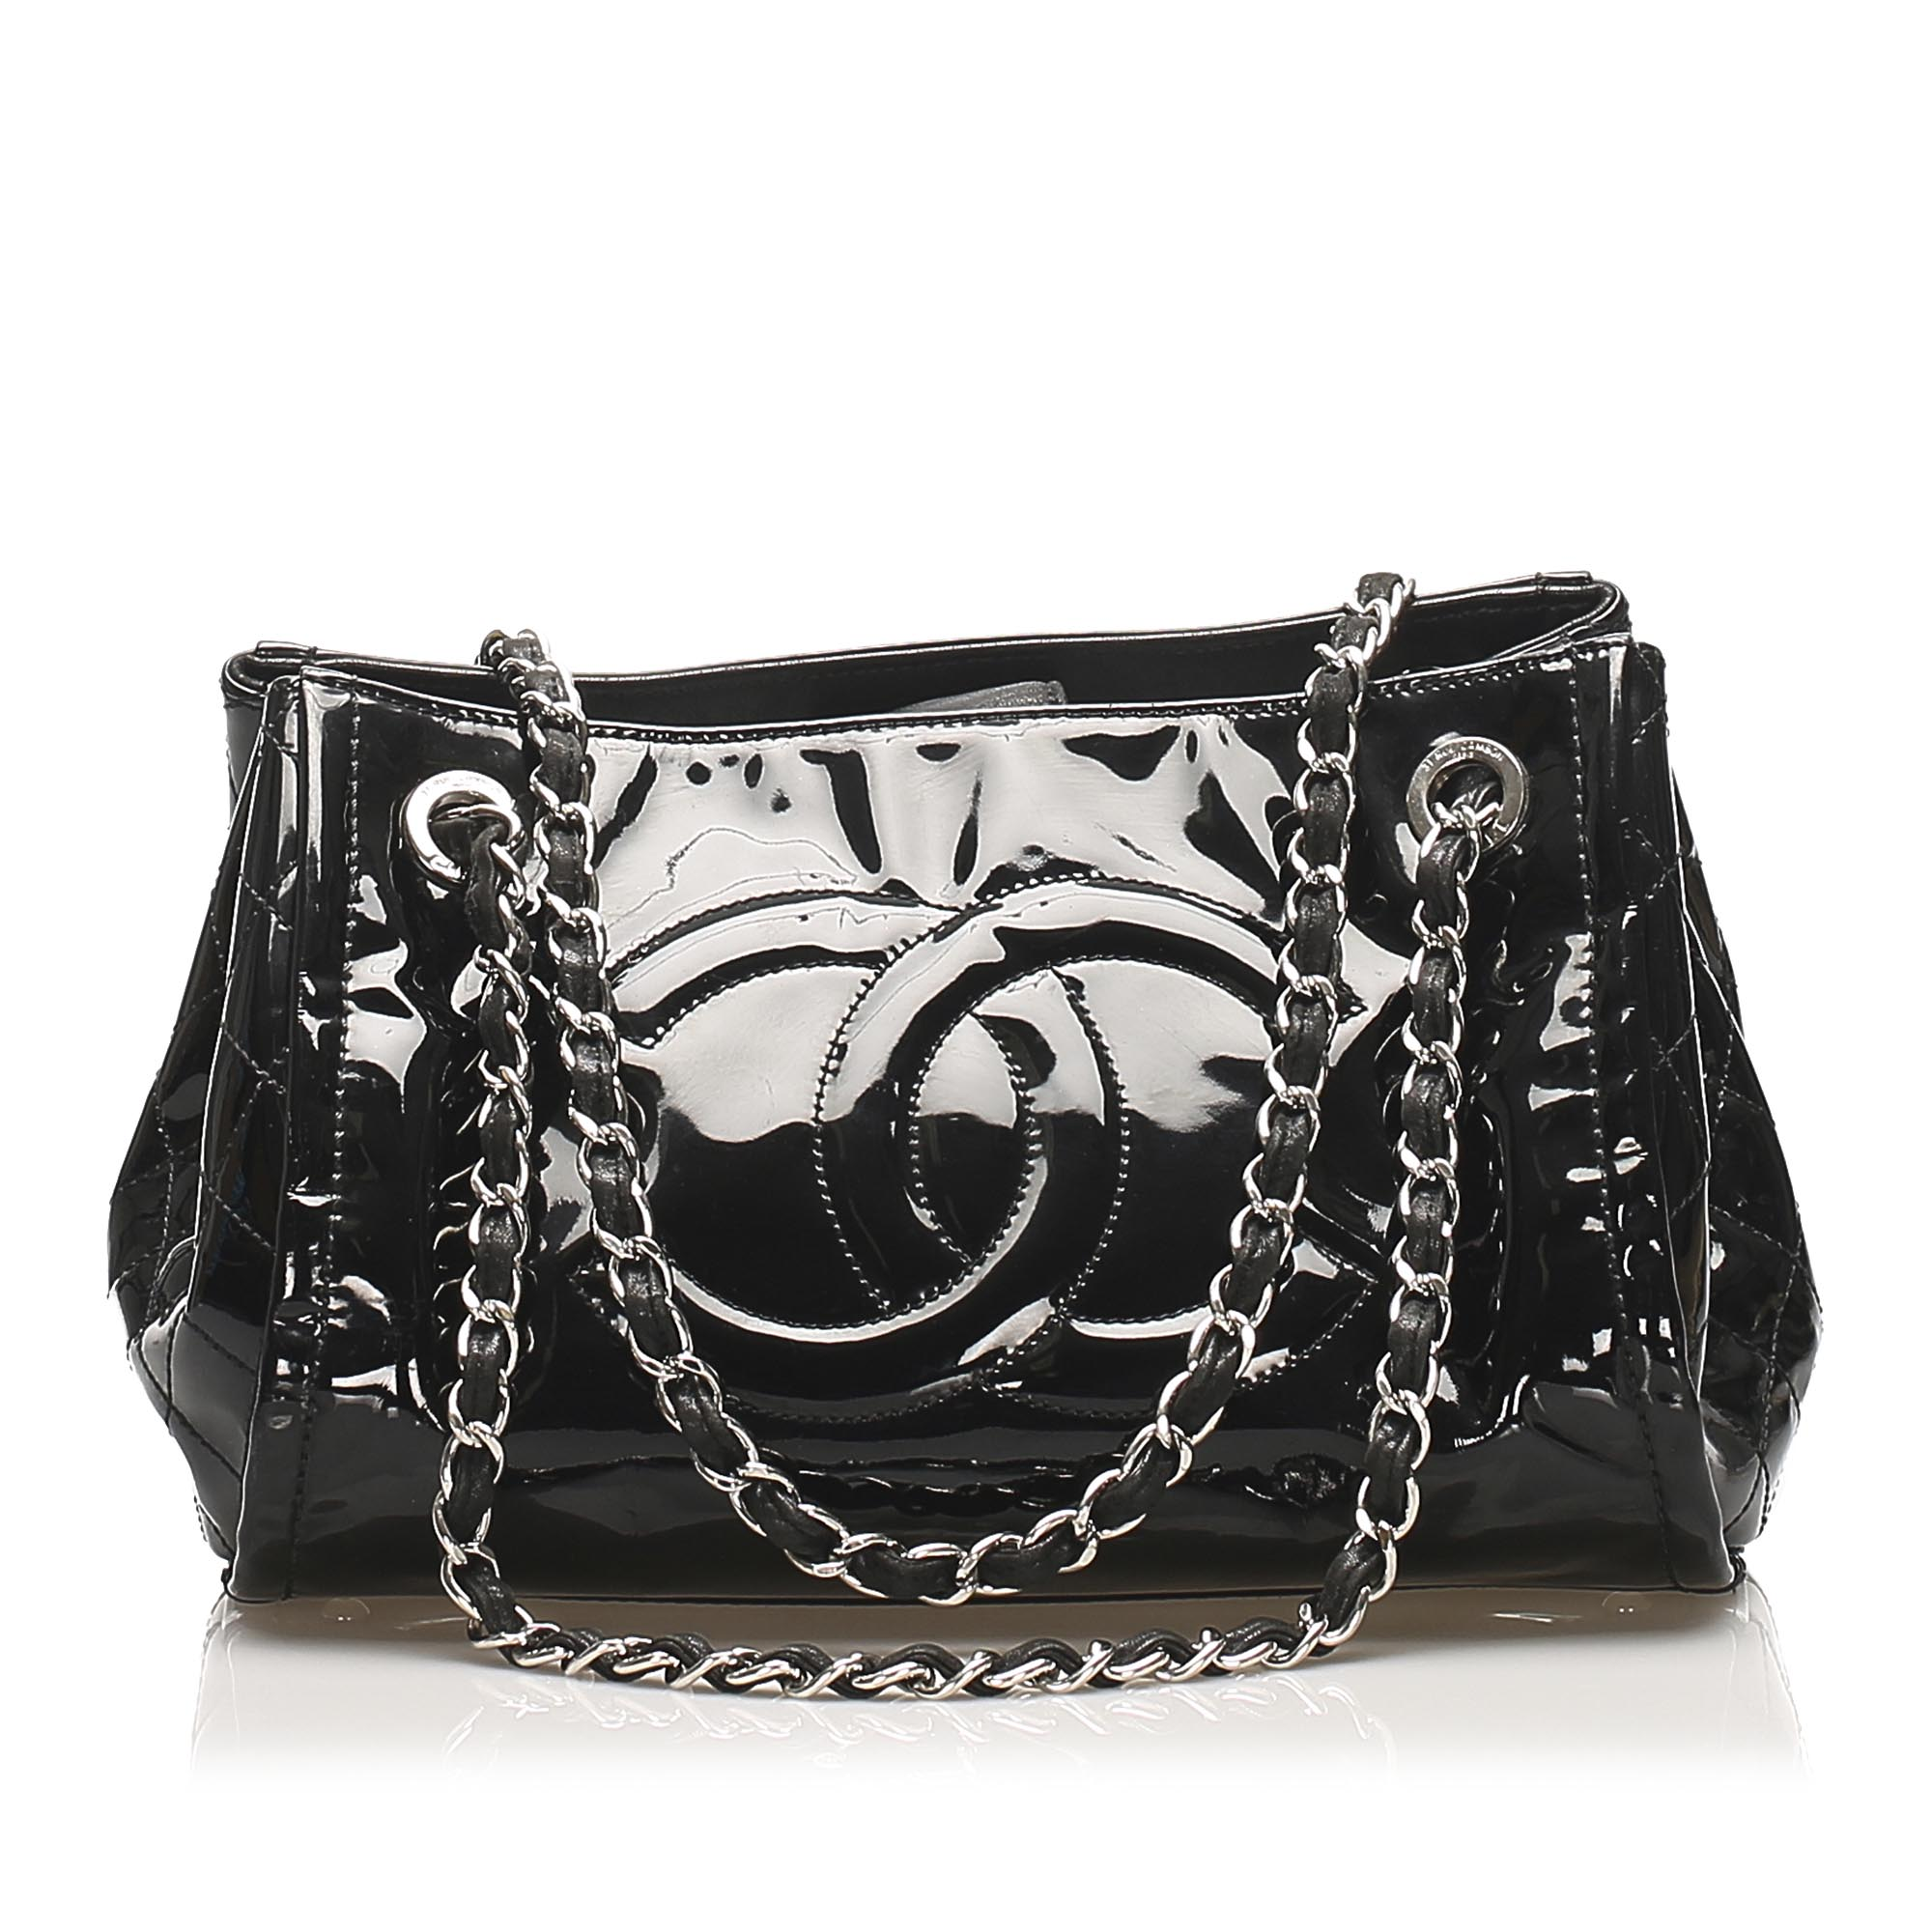 Chanel CC Patent Leather Tote Bag